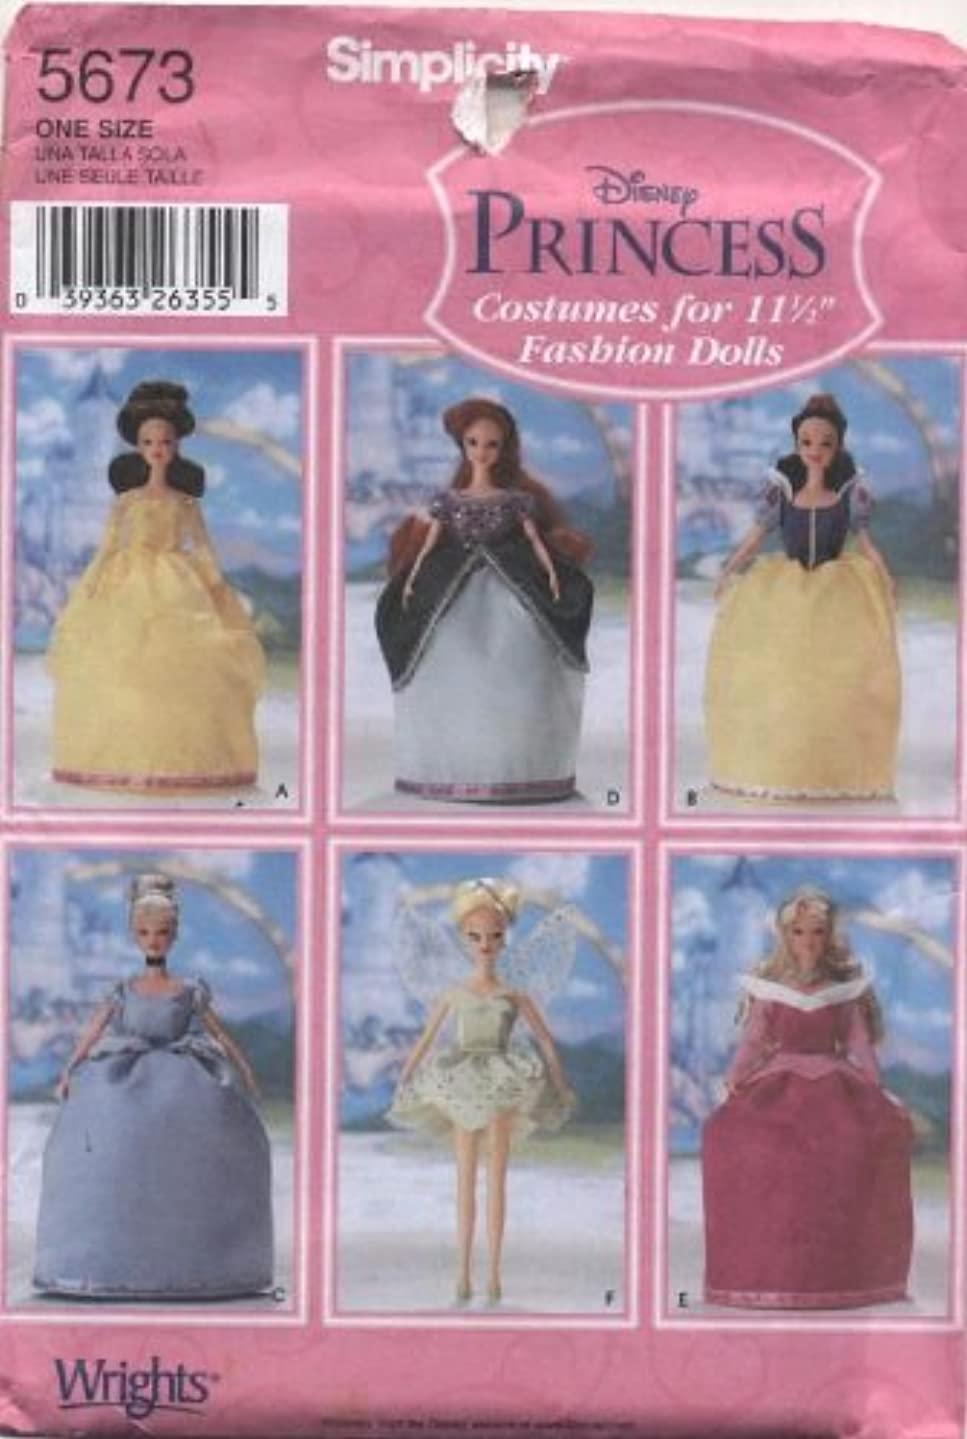 Simplicity Disney Princess Costumes for 11 1/2